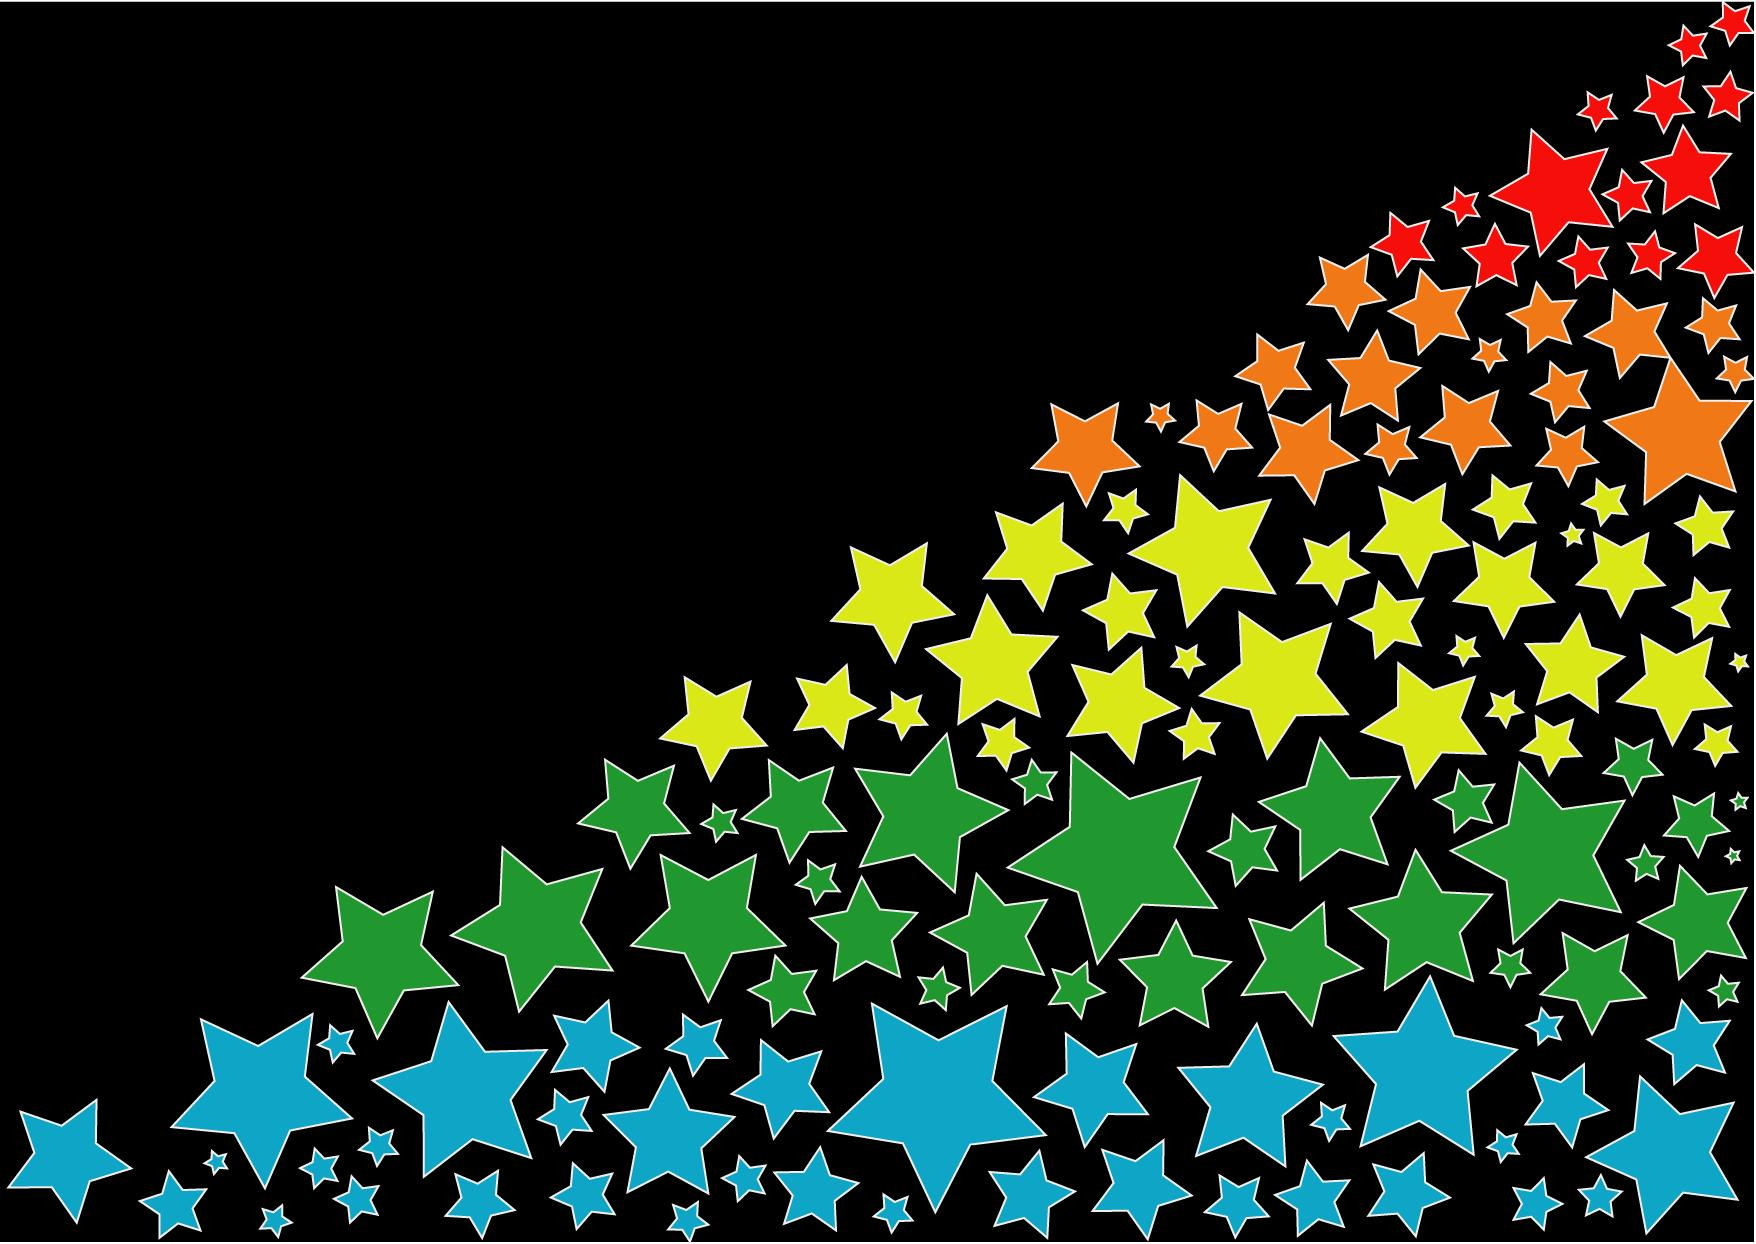 Star Abstract wallpapers HD quality